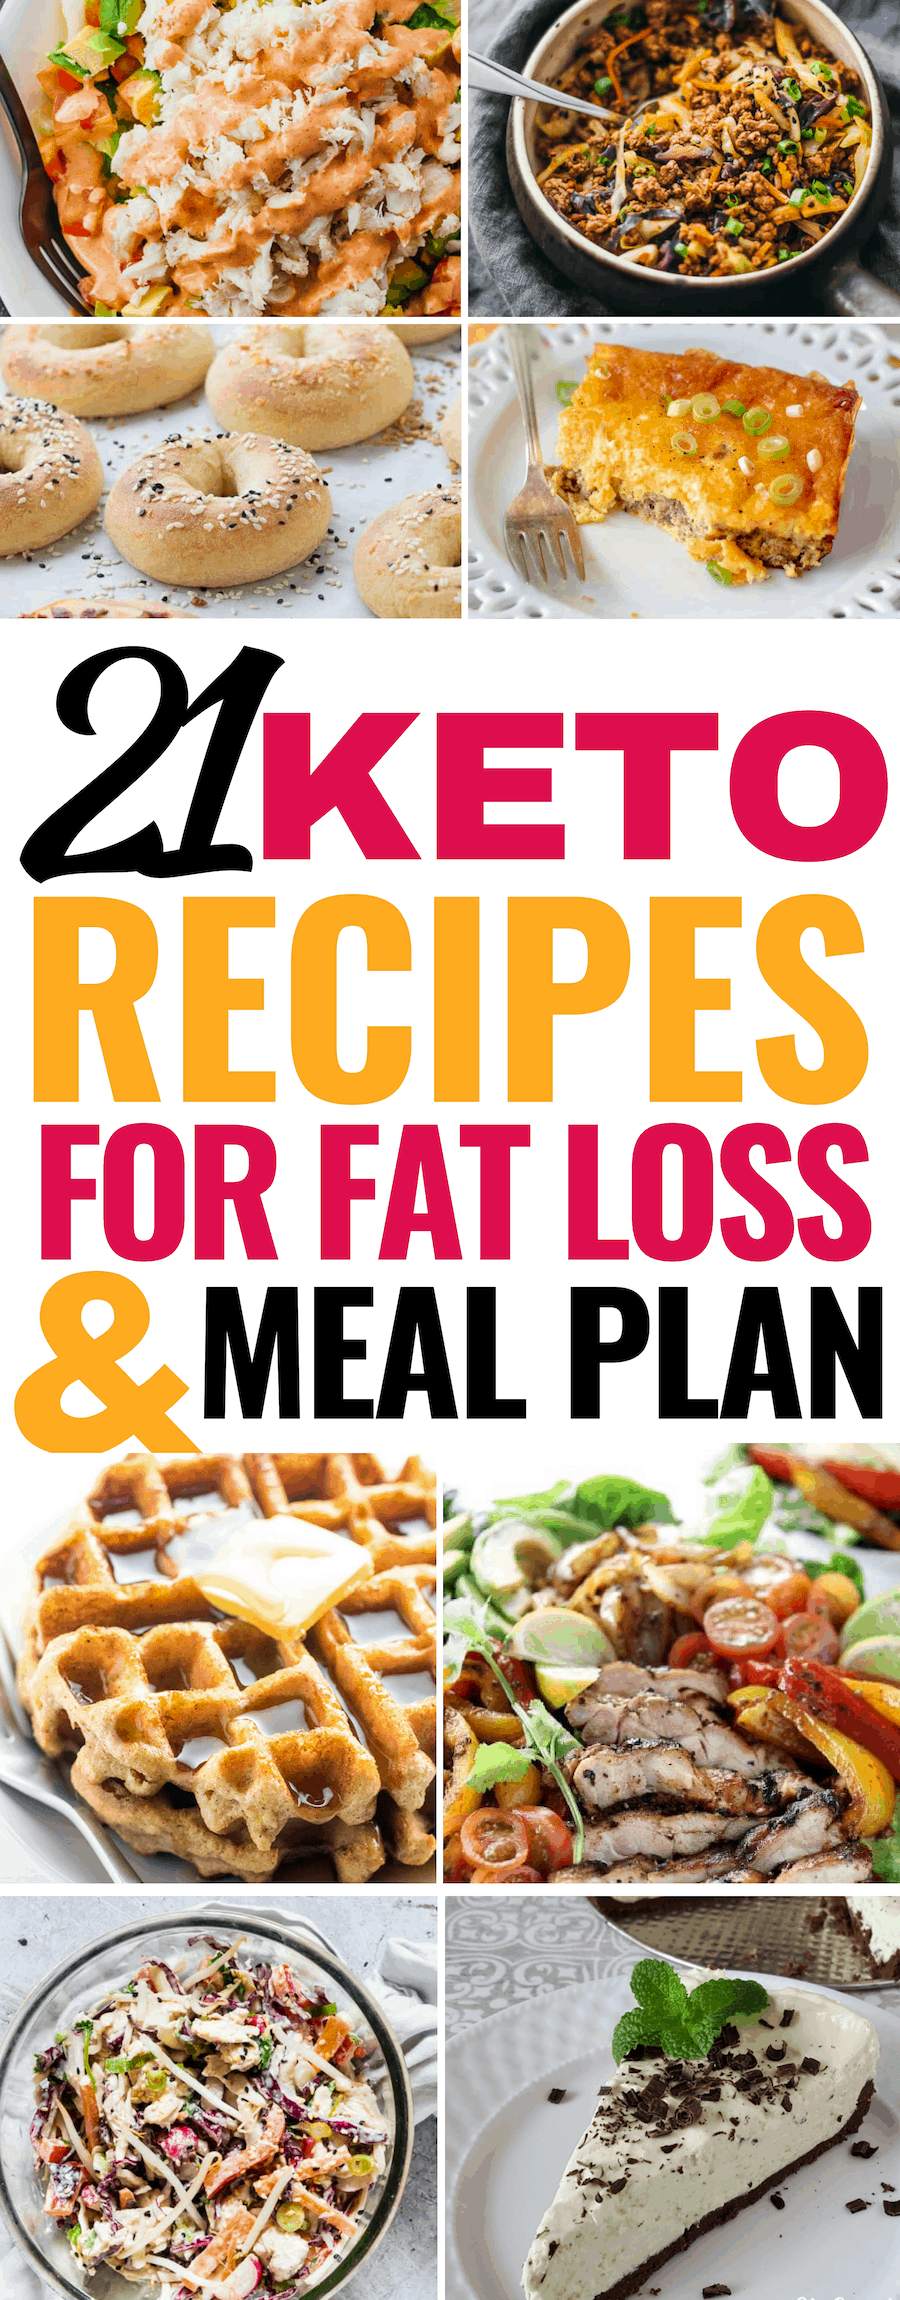 Keto recipes for beginners and 30-day meal plan! These keto recipes are the absolute best for beginners! They're easy to make, include keto breakfast recipes, keto lunch recipes, keto dinner recipes, keto snacks and also a comprehensive 30-day keto meal plan to help you easily transition into the keto lifestyle! This is the best list fo keto recipes for beginners for weight loss! #ketodiet #ketorecipes #ketogenic #keto #ketofood #ketomealplan